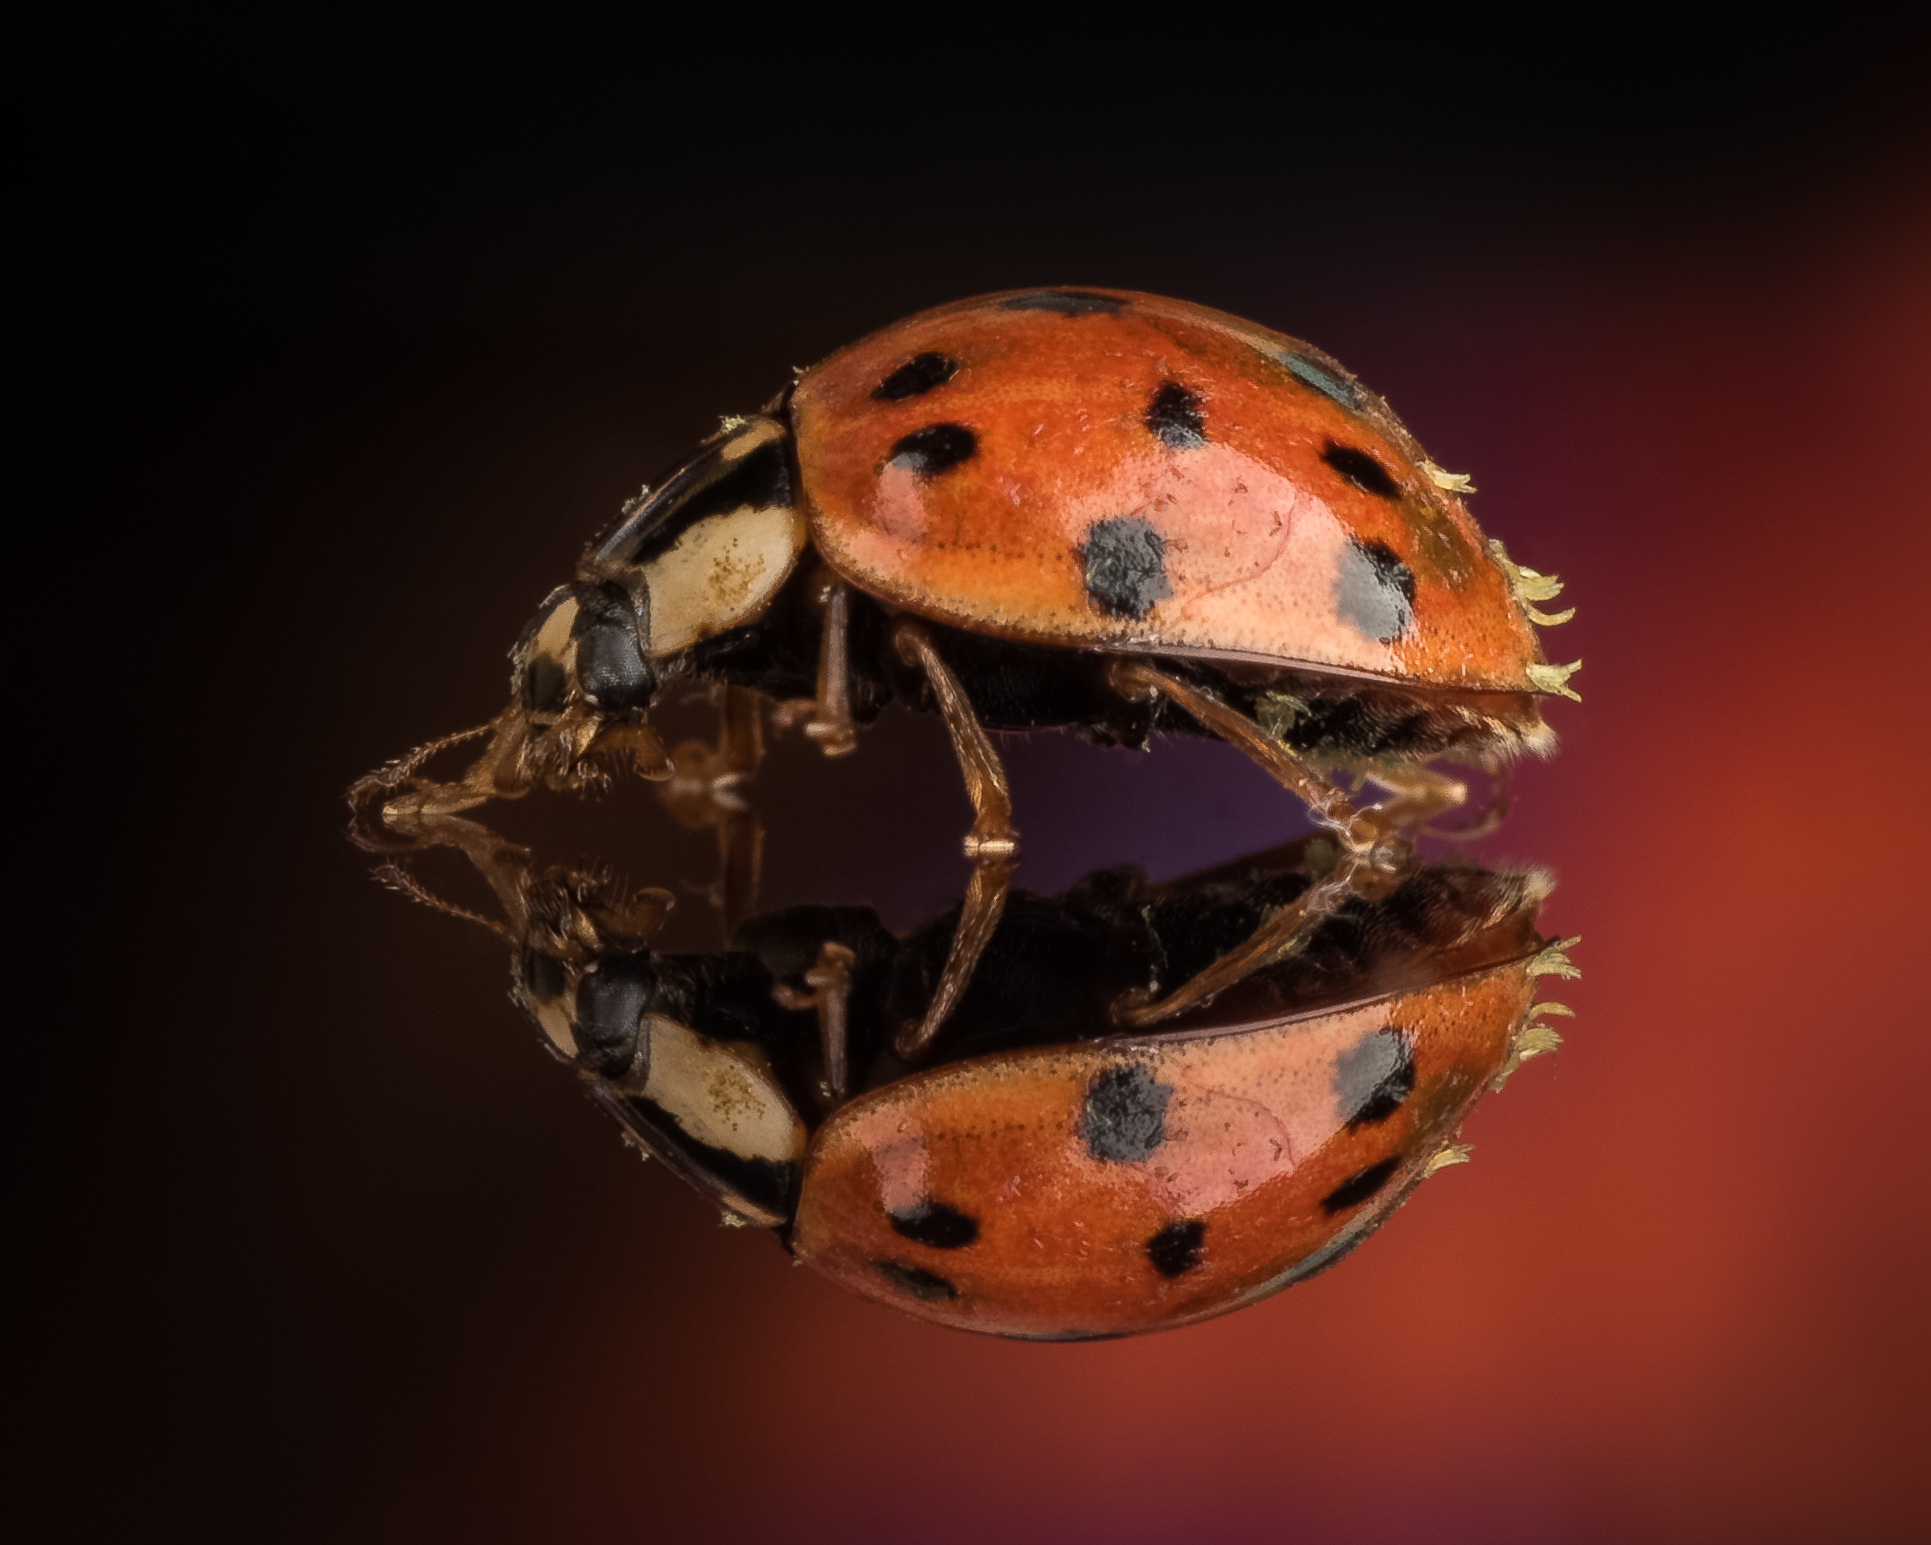 Multicolored Asian Lady Beetle  - Nikon D750 Tamron SP 90mm ISO 100 90mm f/36 1/250 sec